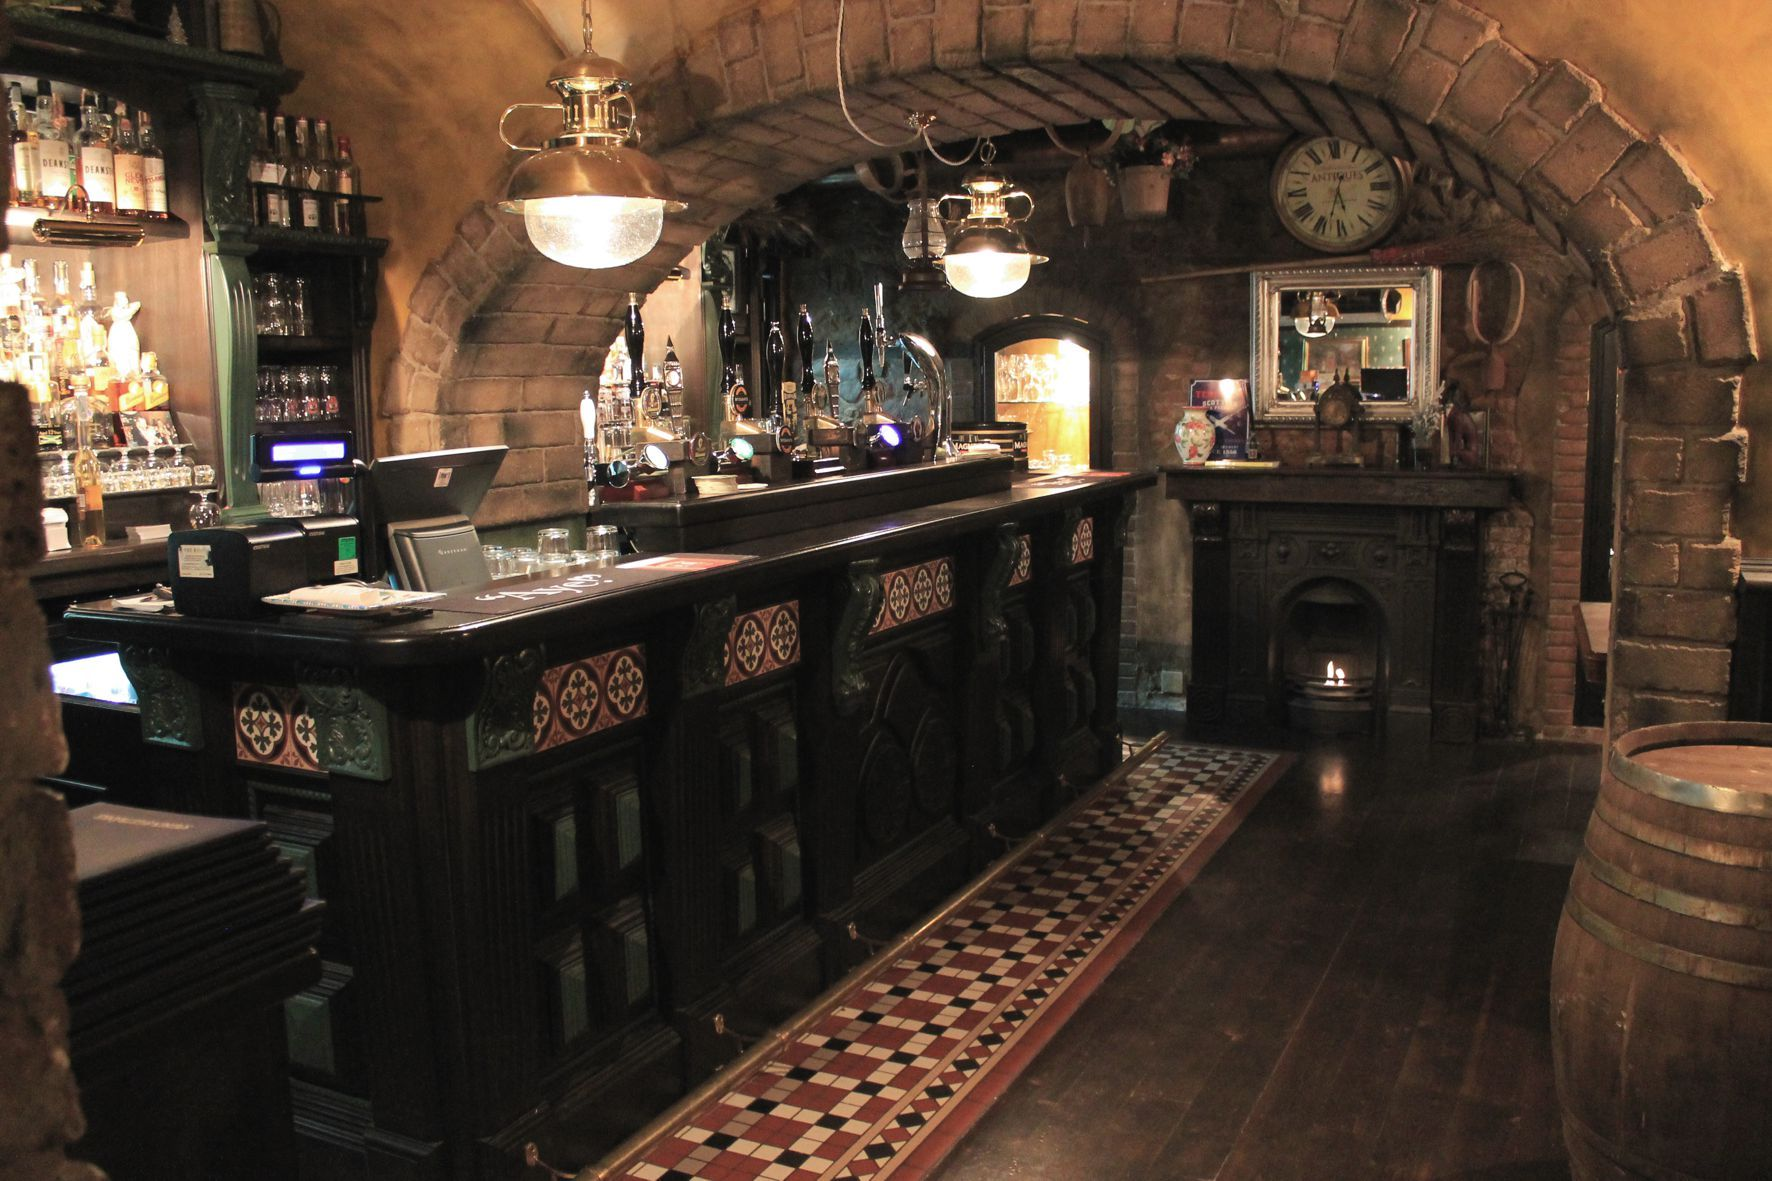 Arredamento Birreria ~ 26 best arredi irish pub irlandesi camproject images on pinterest